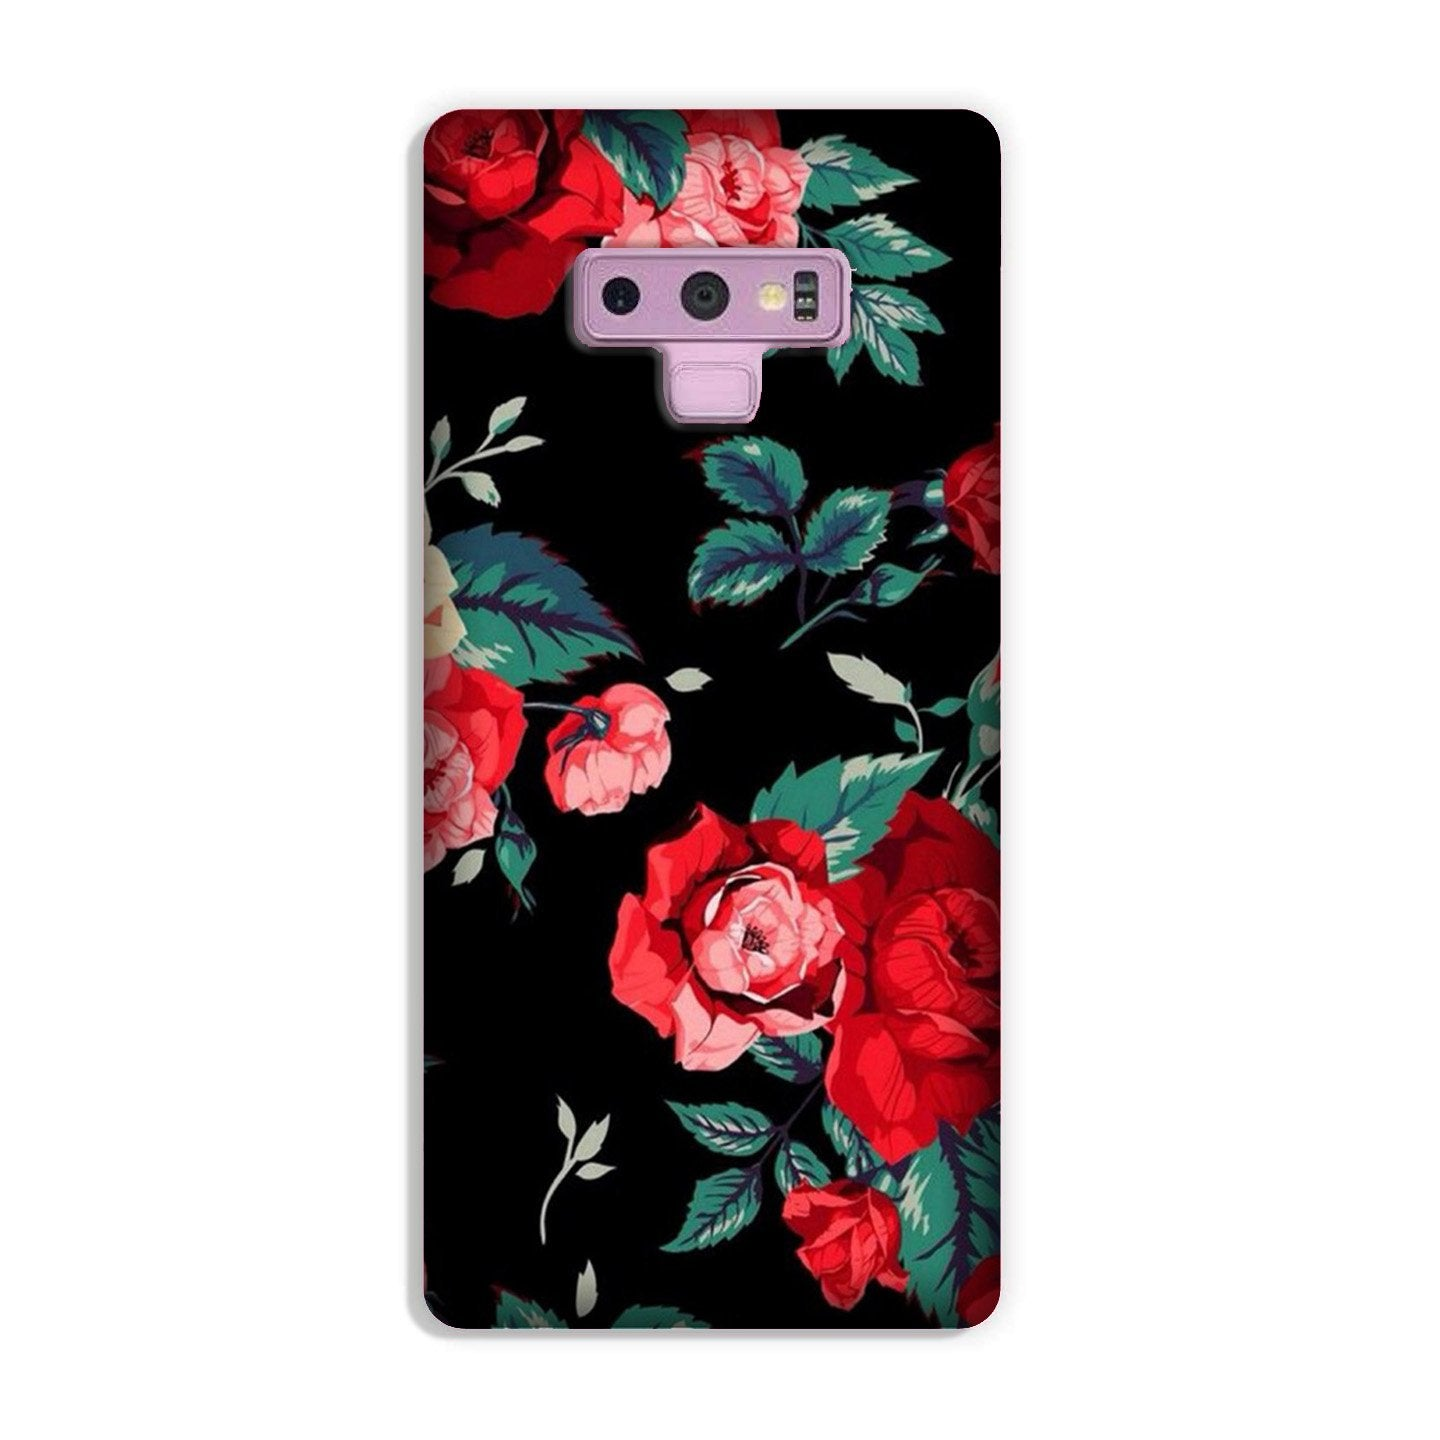 Red Rose2 Case for Galaxy Note 9